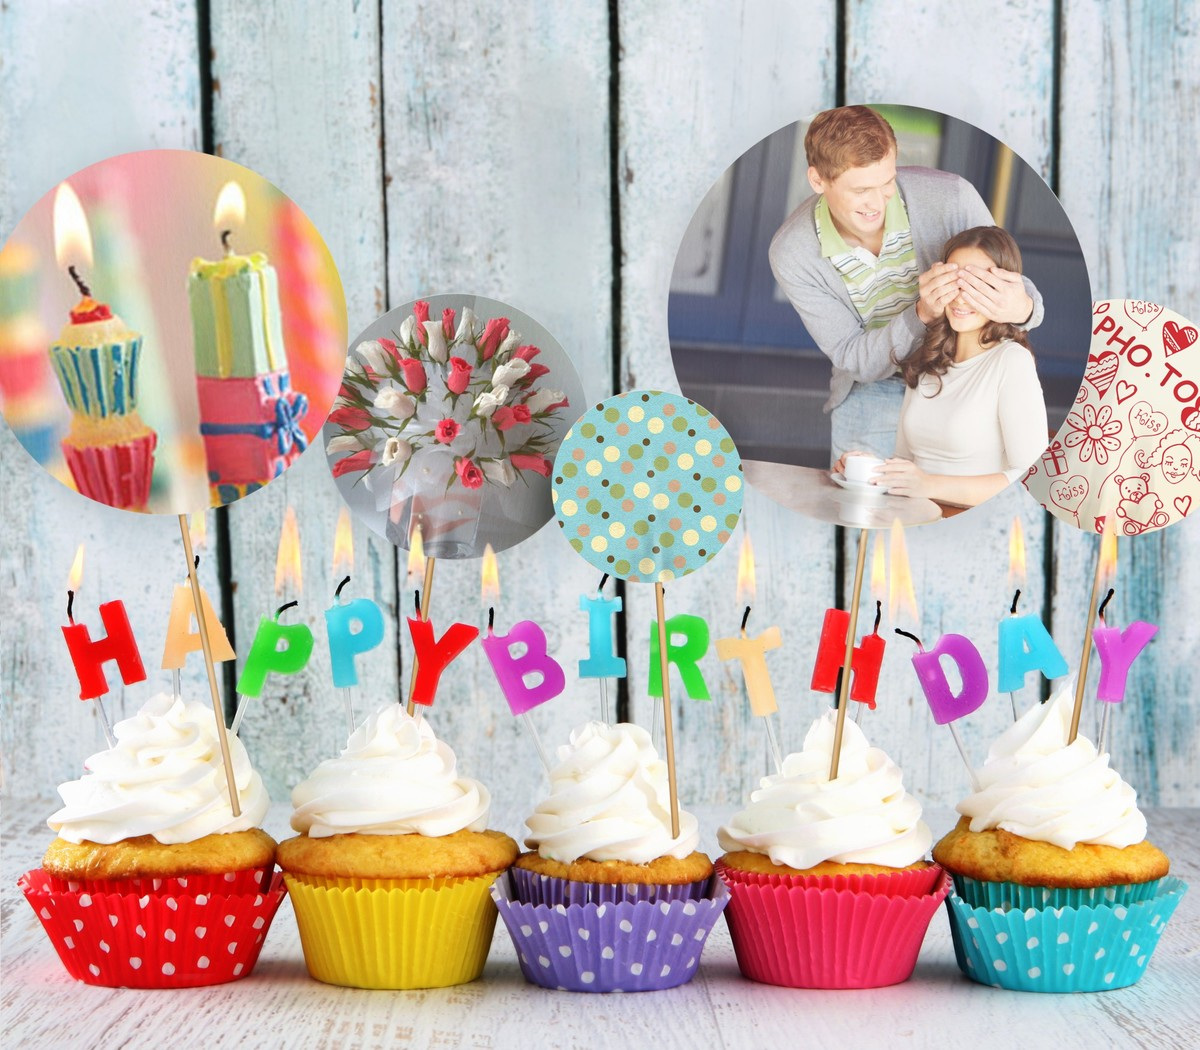 Cool birthday photo card made with three photos of candles, loving couple and flowers